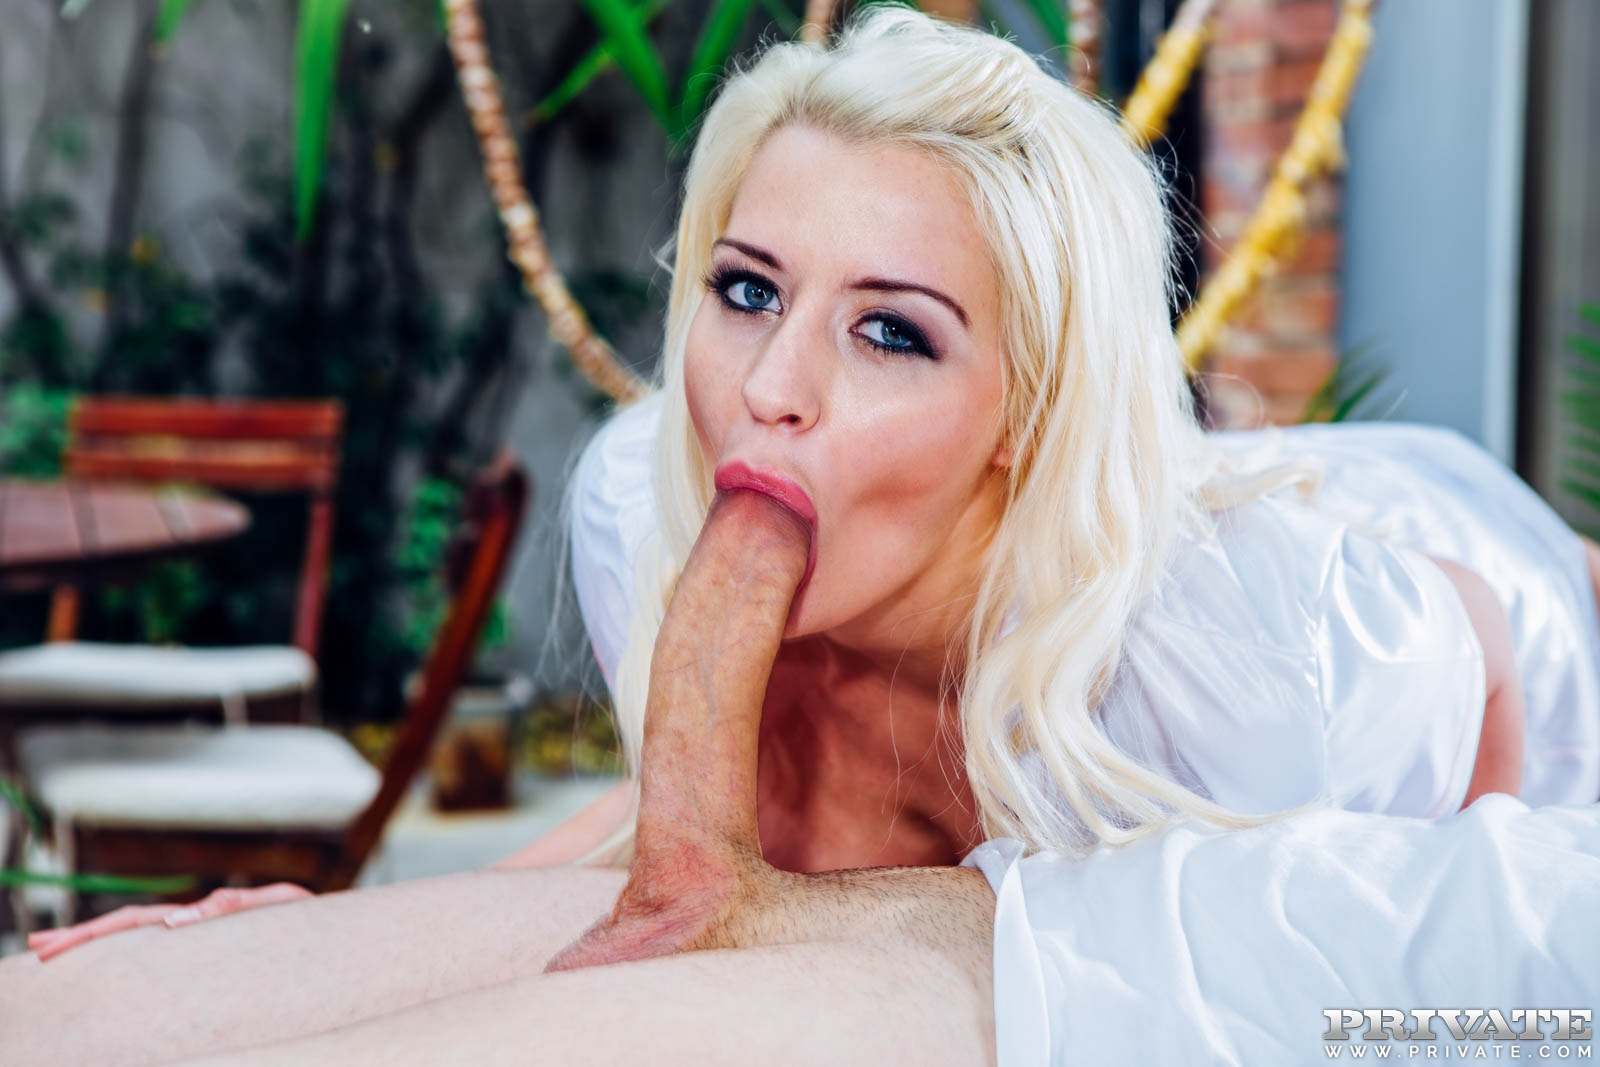 Busty blonde sienna day gets a creampie on a first date